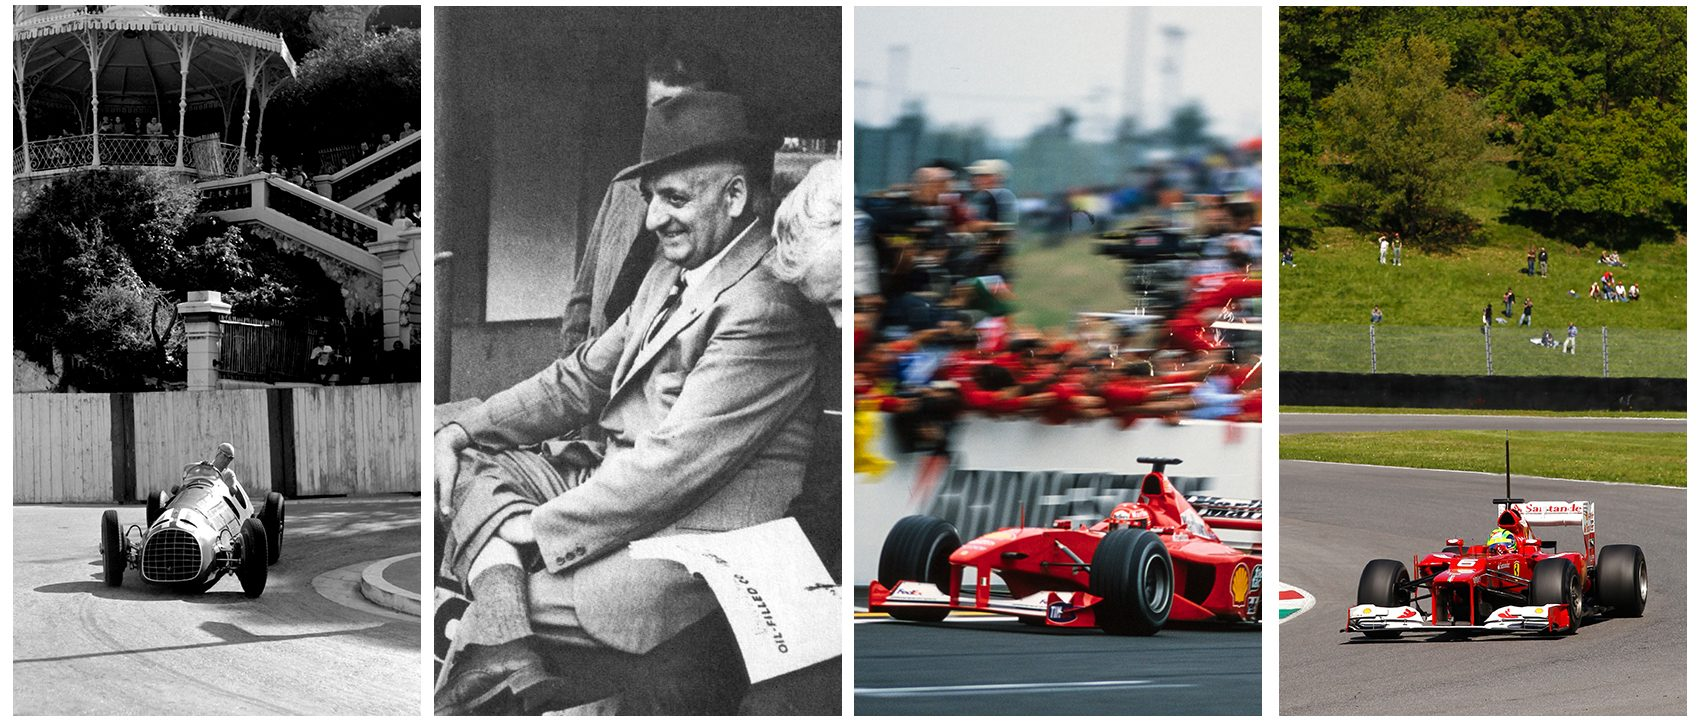 From 1 to 1000th: The Ferrari Journey (Part 2)